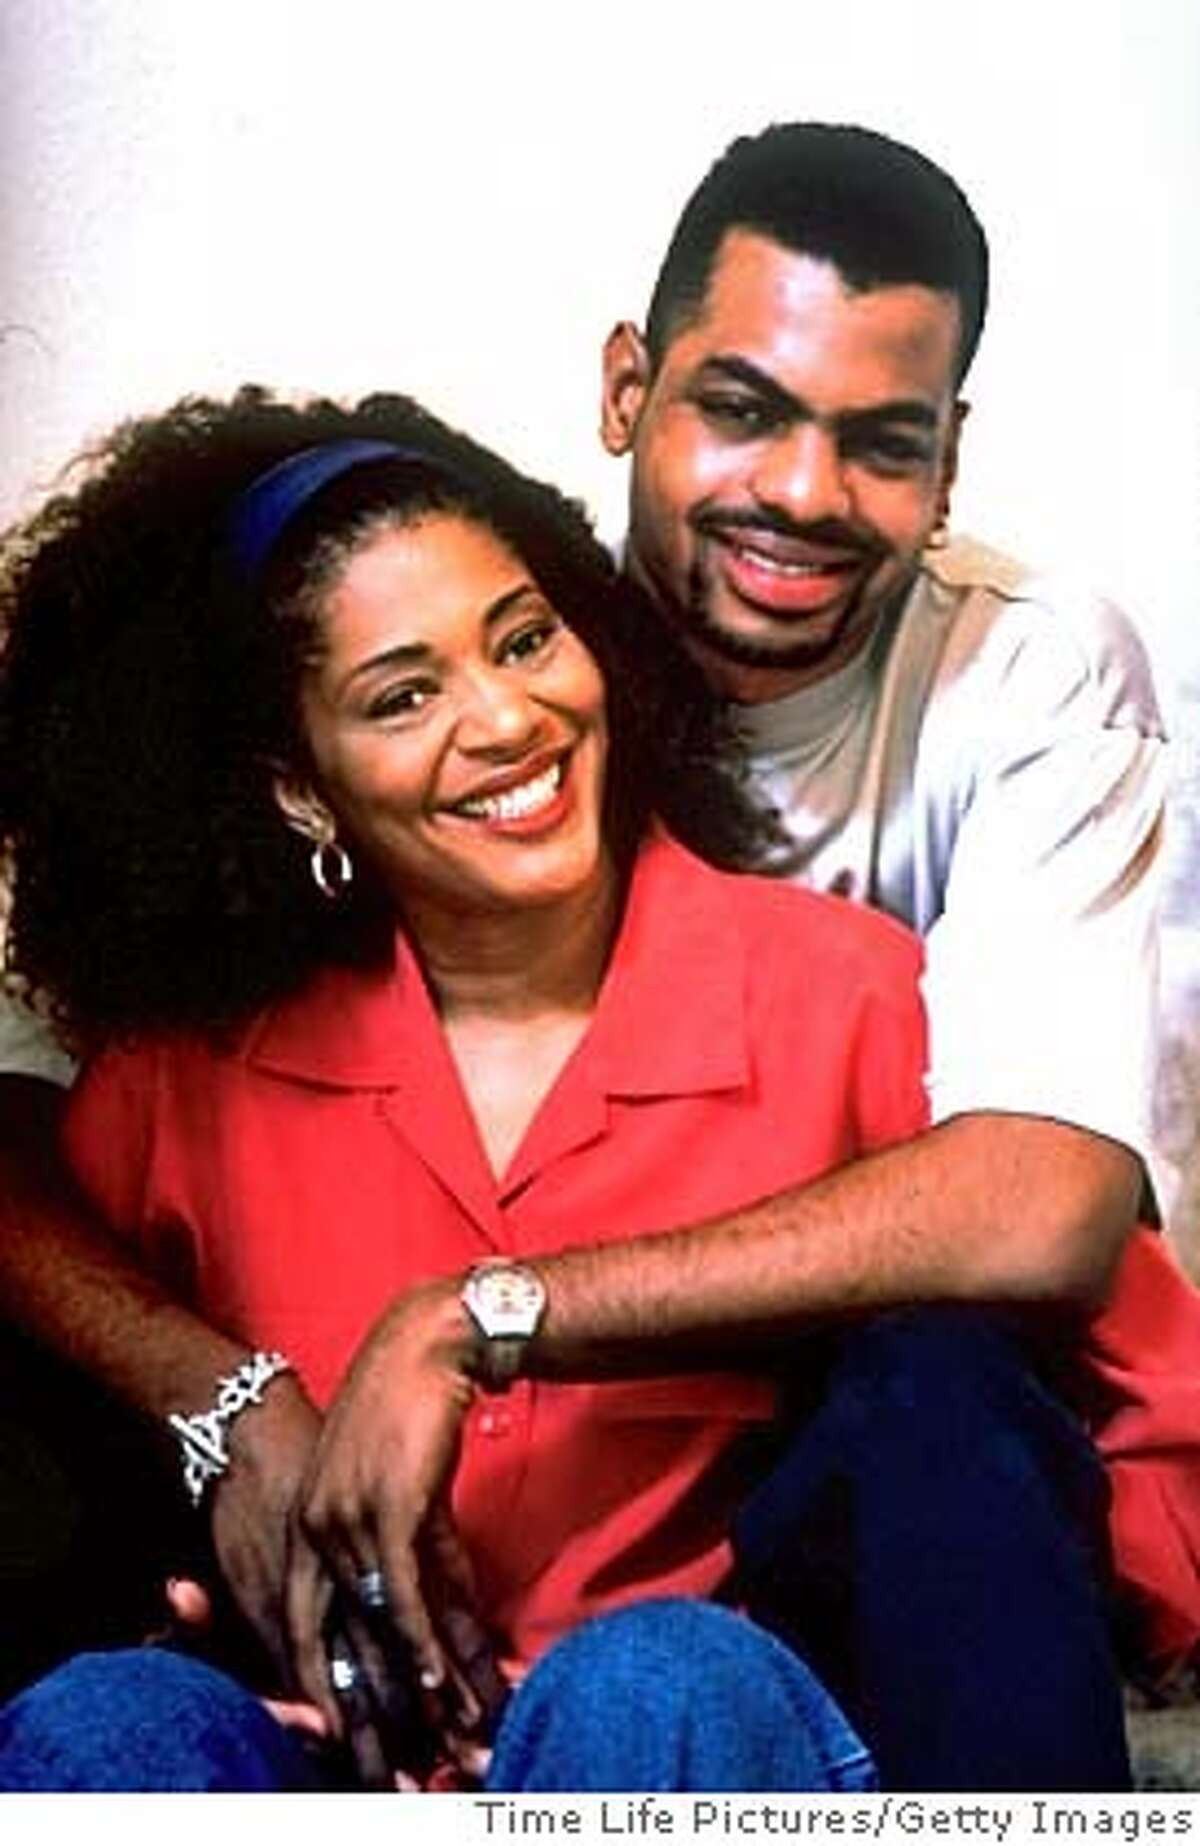 Caption for M&R story 6/26/05: Author Terry McMillan and husband Jonathan Plummer in happier times. Original caption from 1996: Author Terry McMillan, 44, cuddling with her 21-yr-old live-in lover, college student Jonatahan Plummer. (Photo by John Storey//Time Life Pictures/Getty Images) Ran on: 06-26-2005 Terry McMillan was 44 and Jonathan Plummer 21 in 1996. He says he didnt know he was gay when he met her in 1995. Ran on: 06-26-2005 Ran on: 06-26-2005 Ran on: 06-26-2005 Ran on: 06-26-2005 Ran on: 06-26-2005